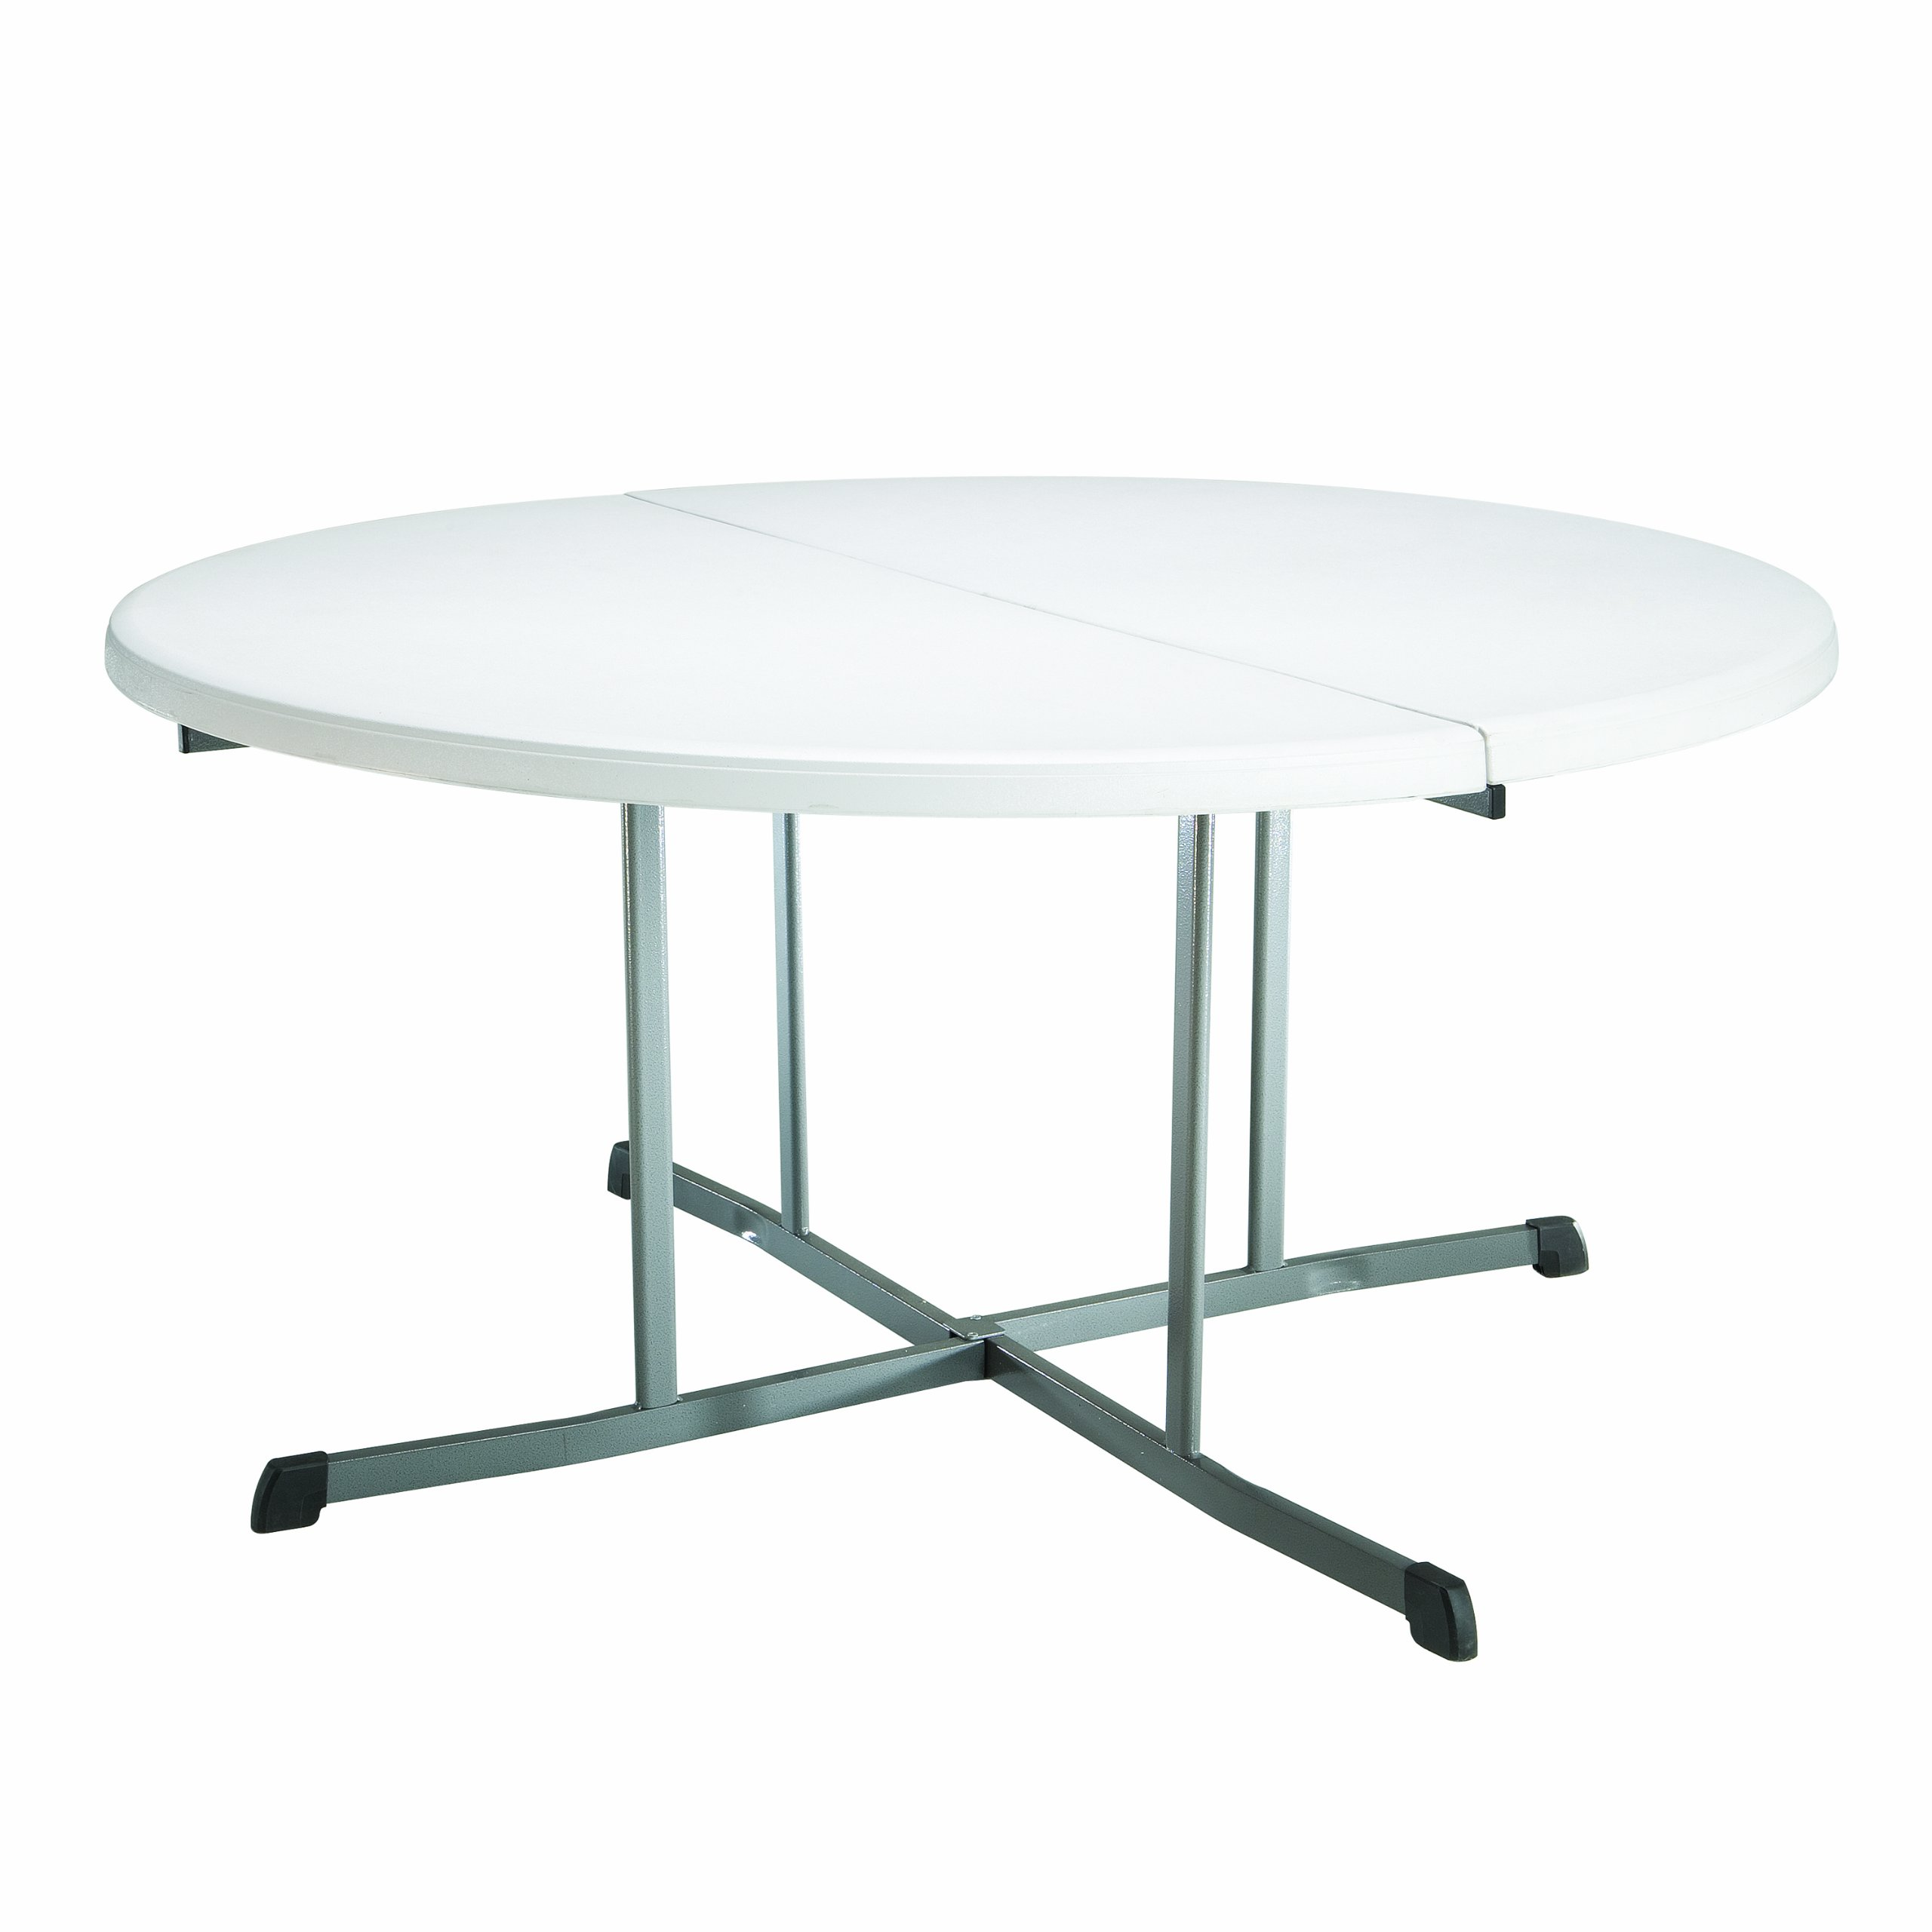 Lifetime 25402 Commercial Round Fold In Half Table, 5 Feet , White Granite by Lifetime